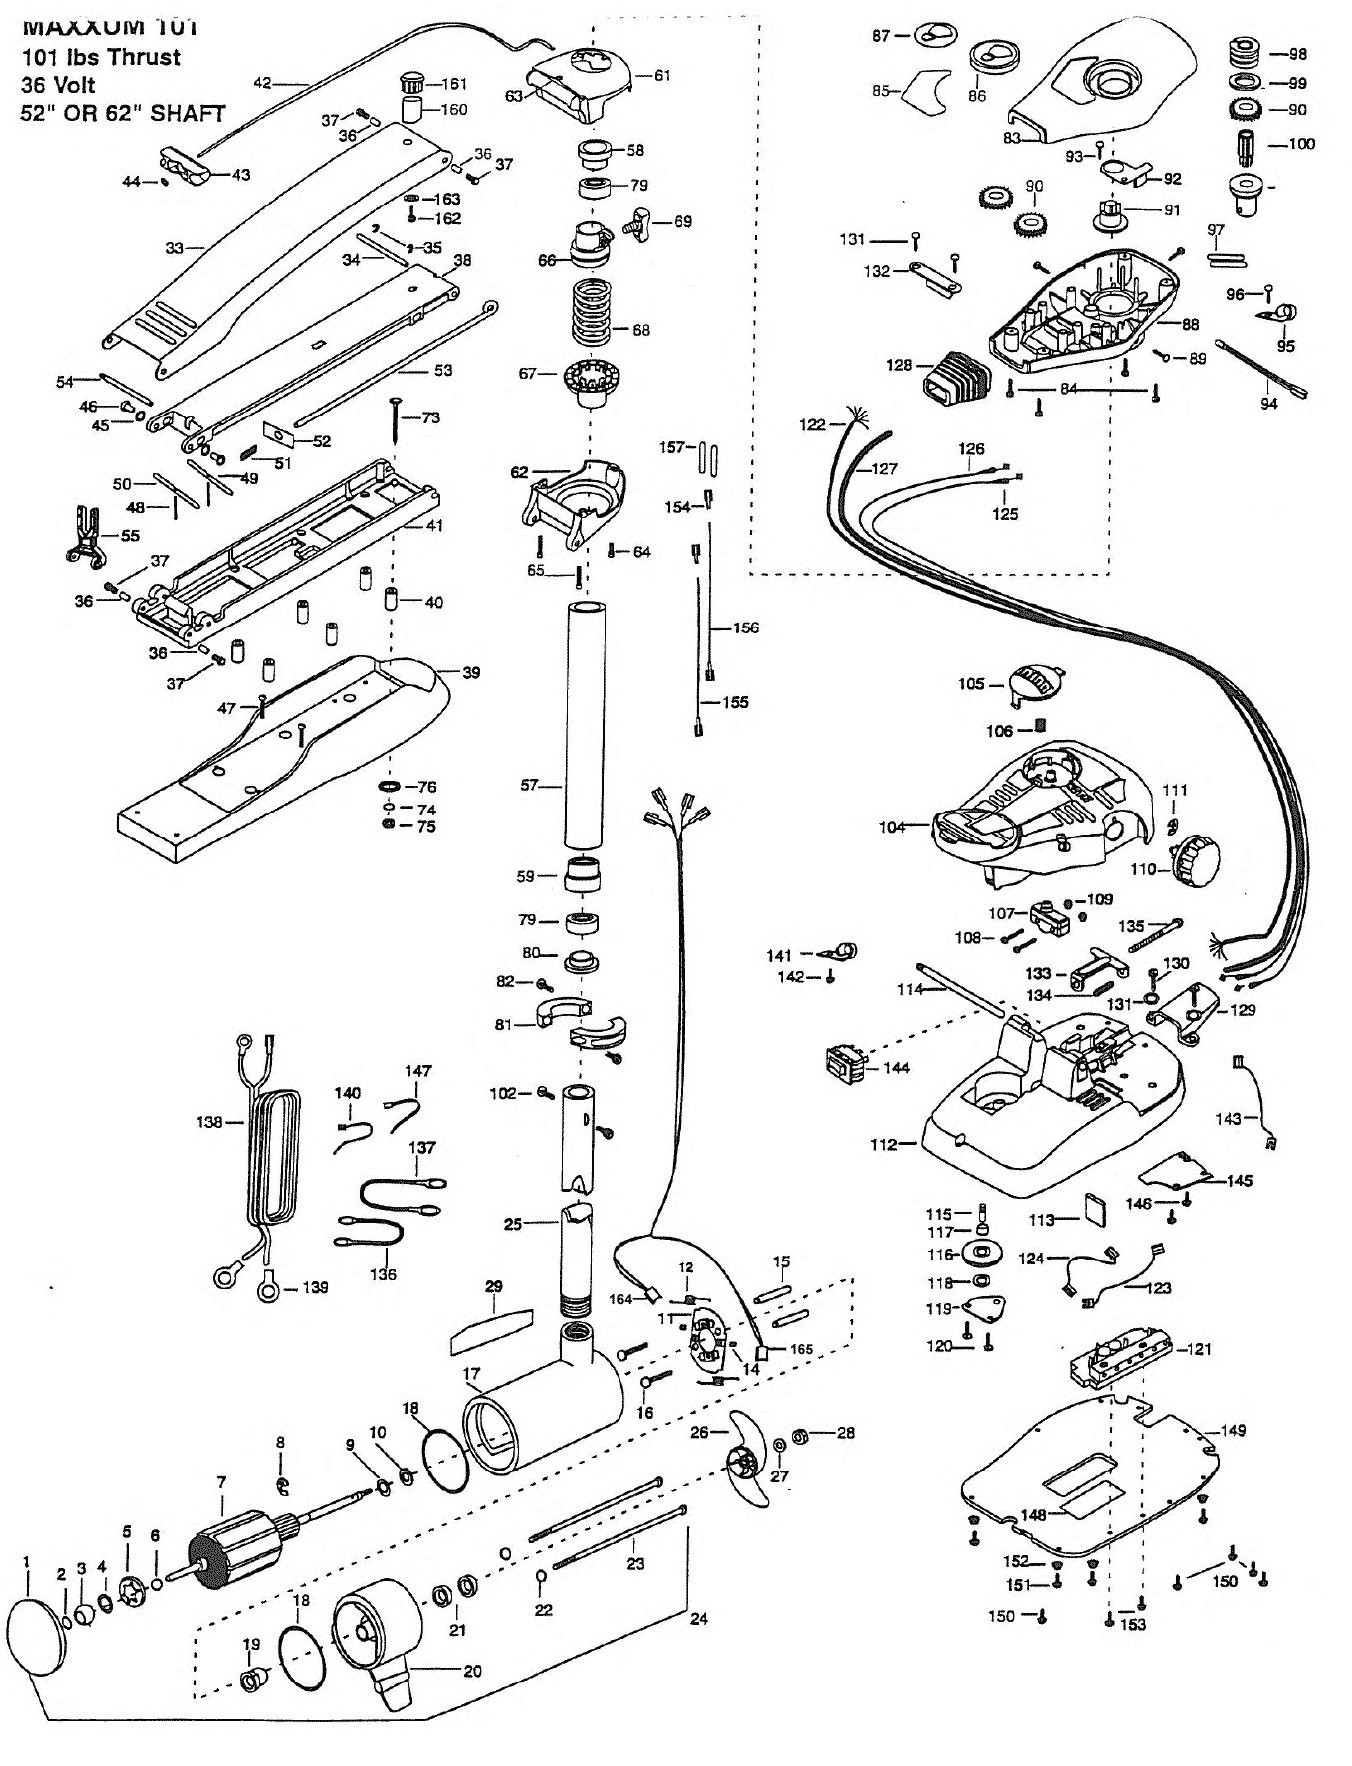 Mag Ek Electric Motors Wiring Diagram Motor Repalcement Parts And